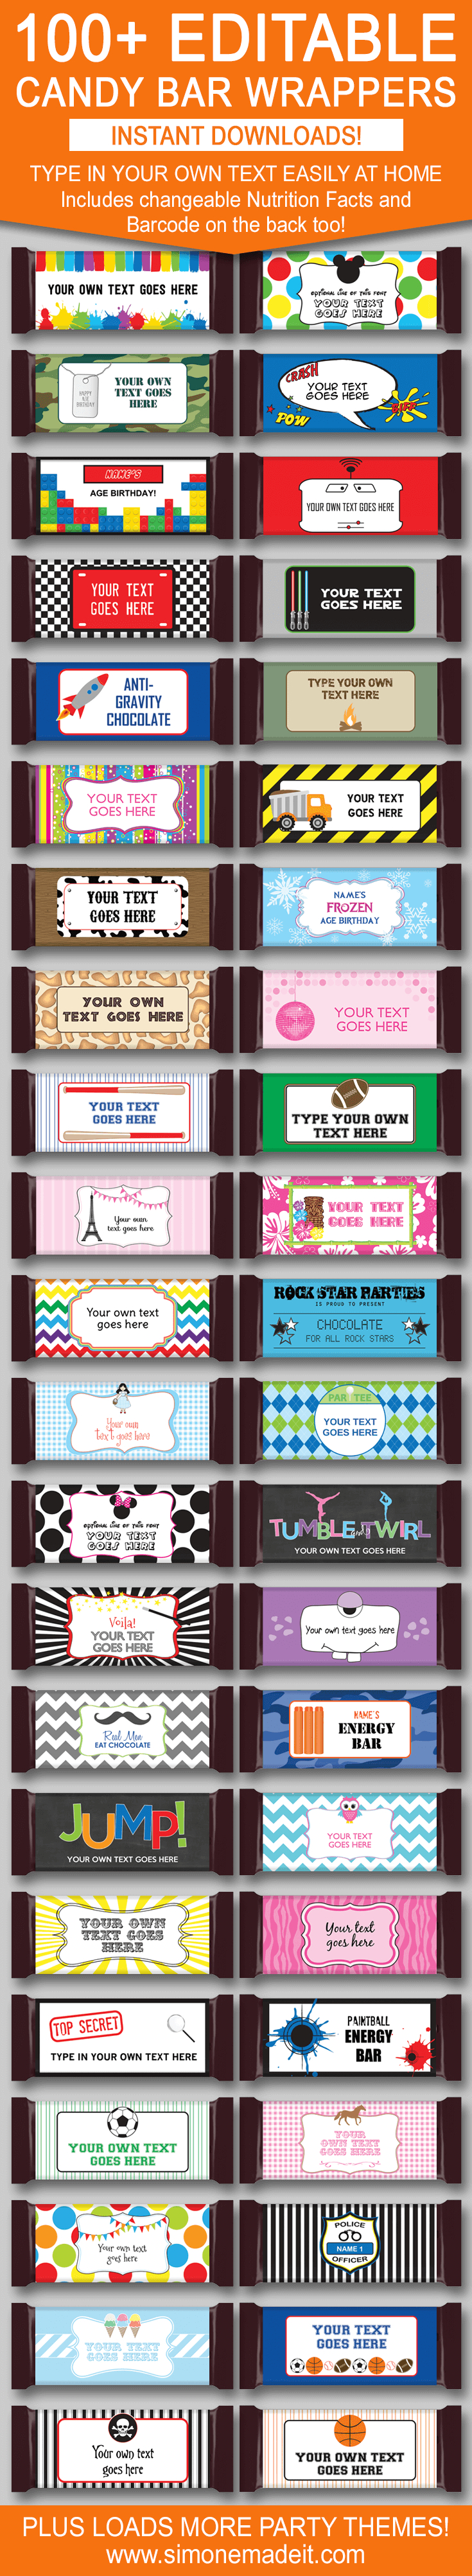 Diy Candy Bar Wrapper Templates | Party Favors | Chocolate Bar Labels - Free Printable Birthday Candy Bar Wrappers